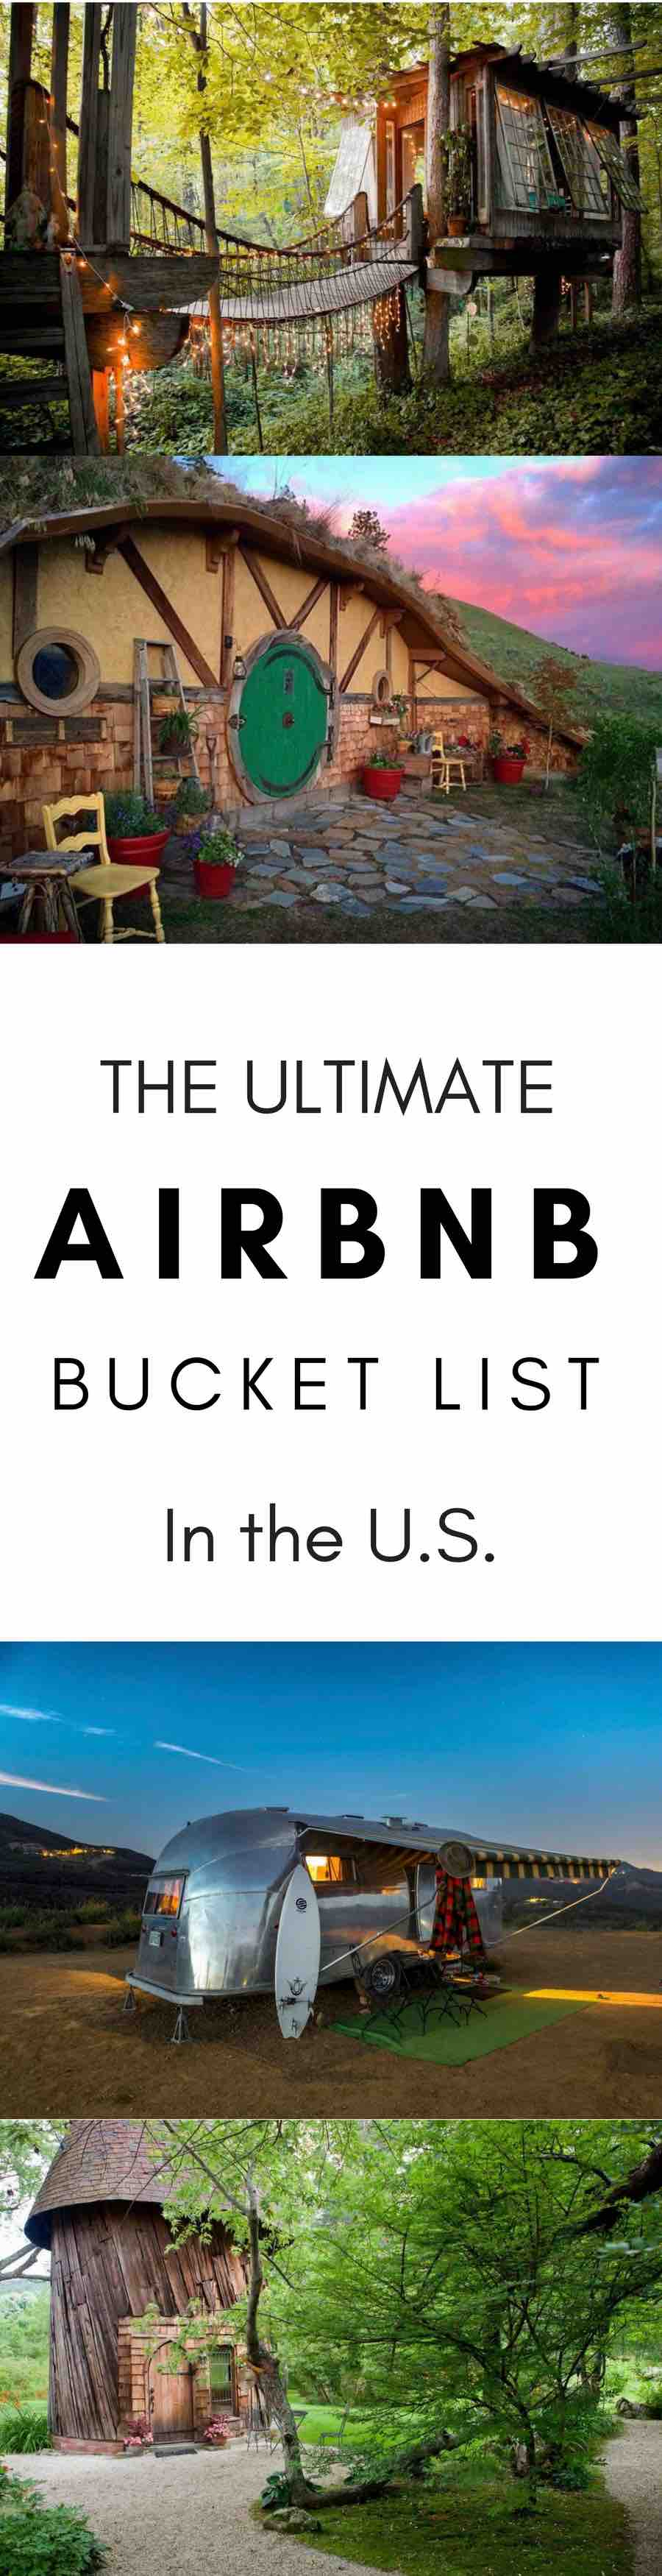 Airbnb ideas tips | Airbnb ideas for hosts based on these beautiful Airbnbs